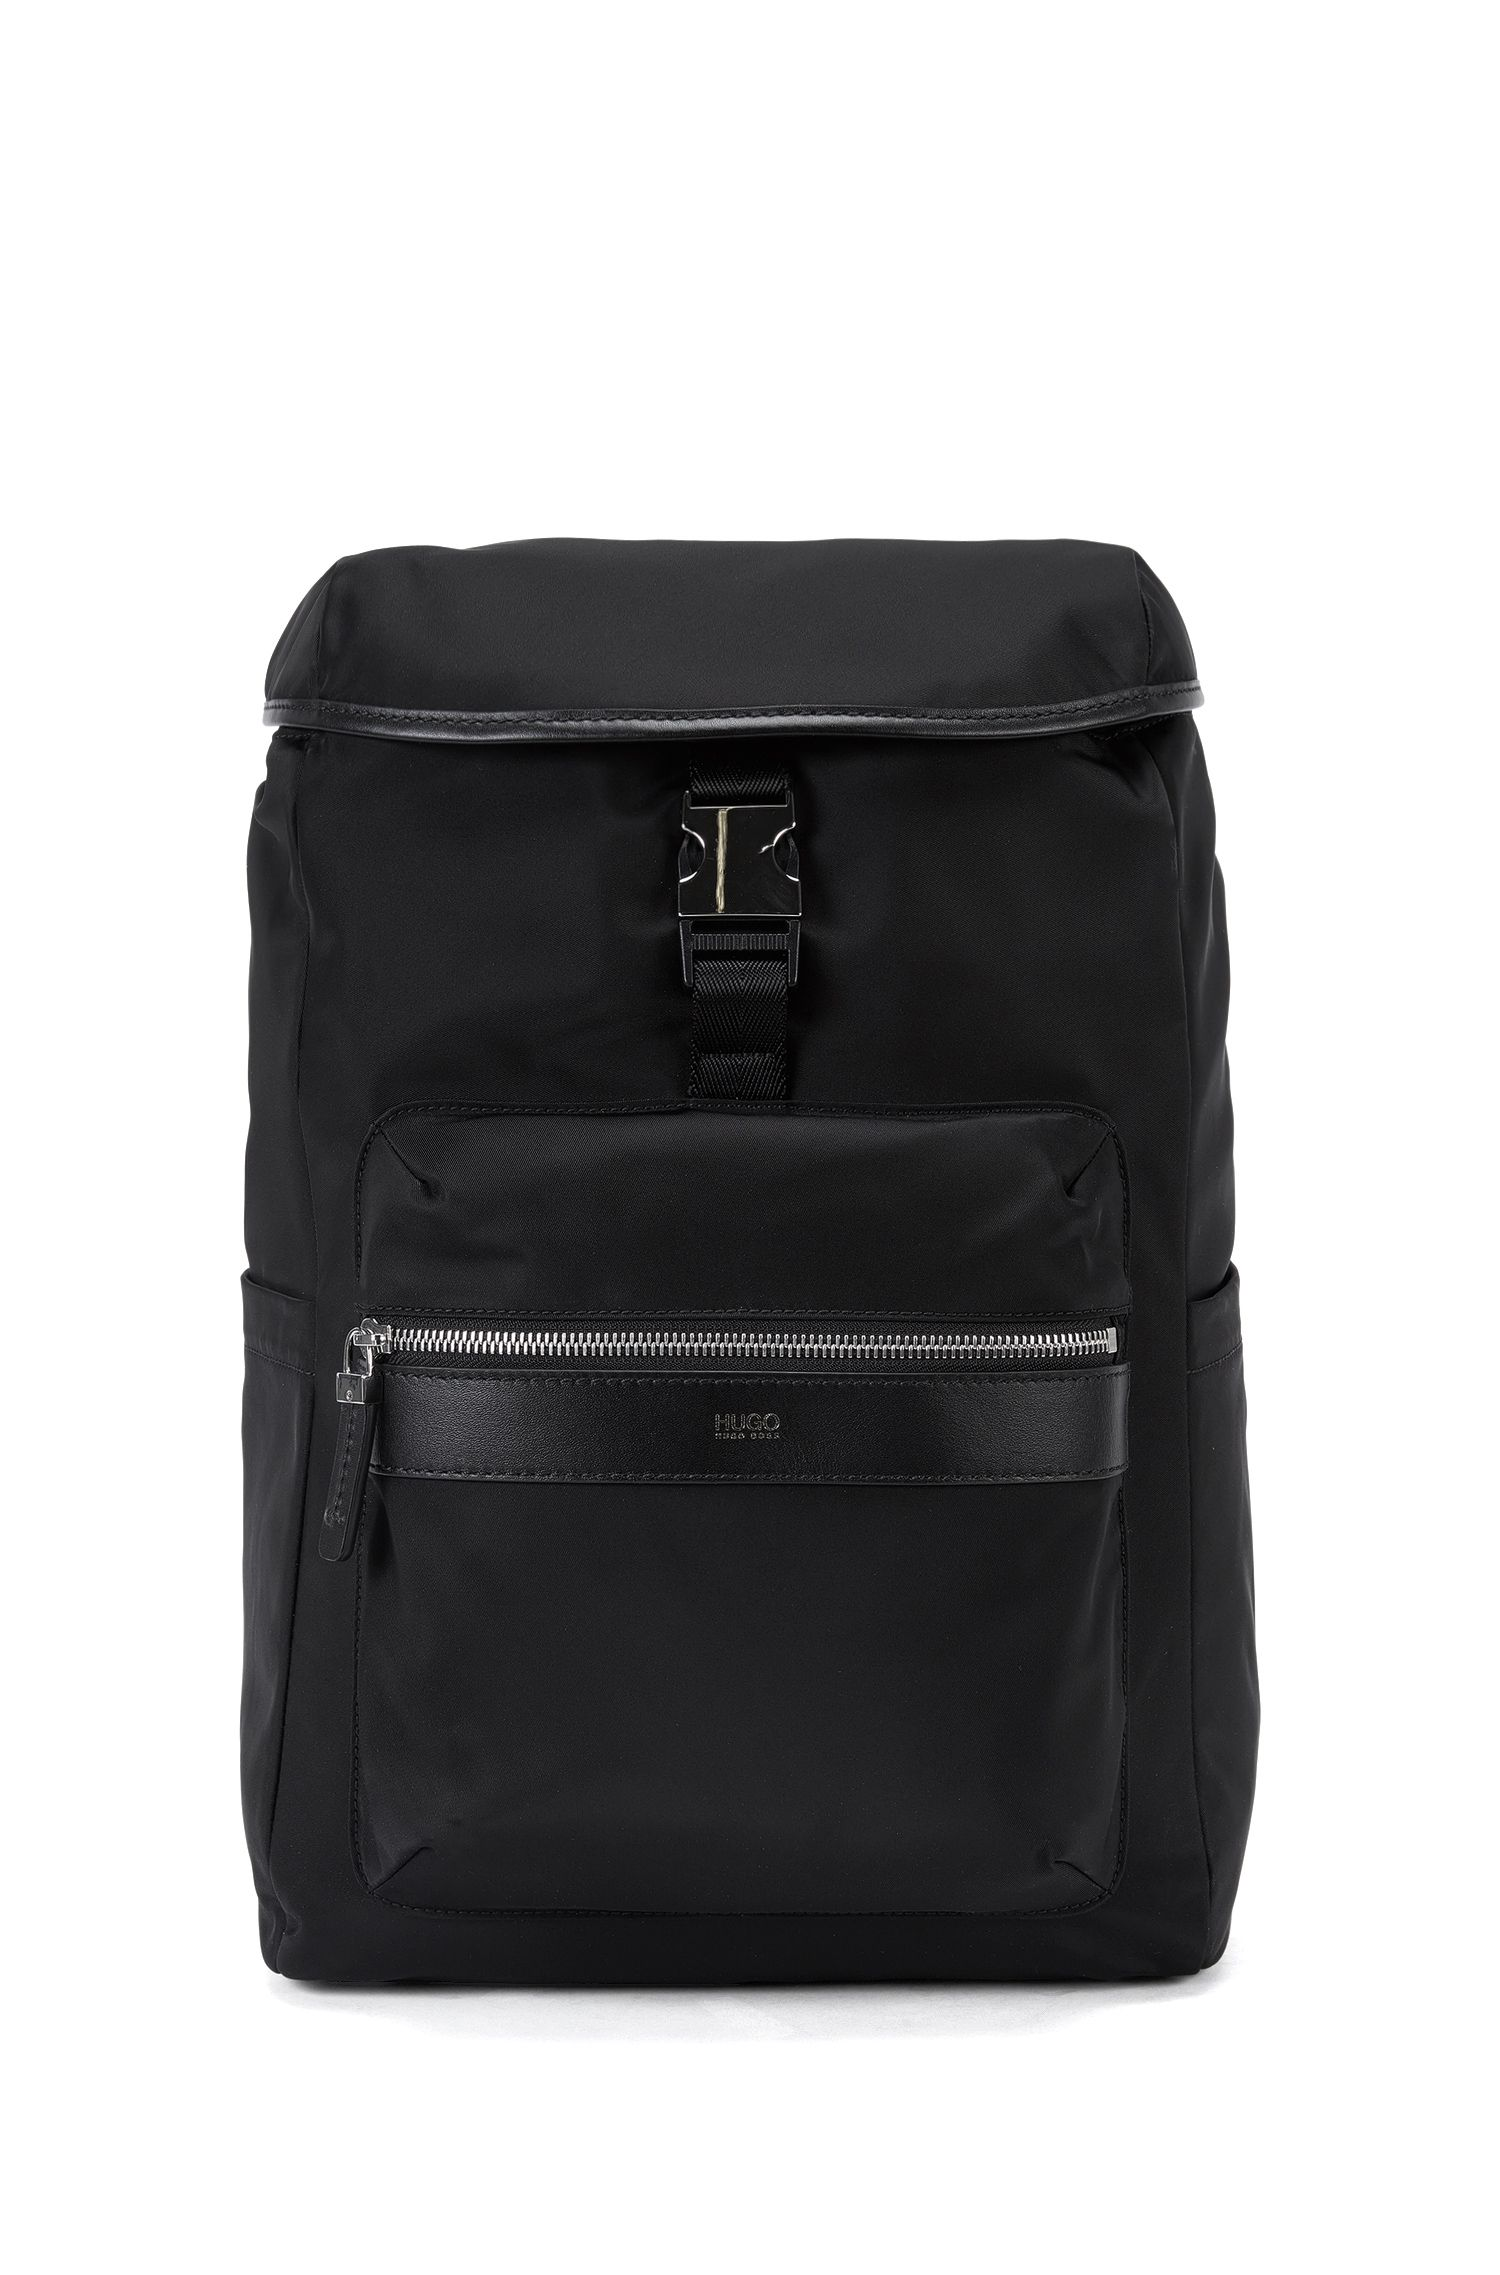 Nylon Rucksack | Digital L Backp